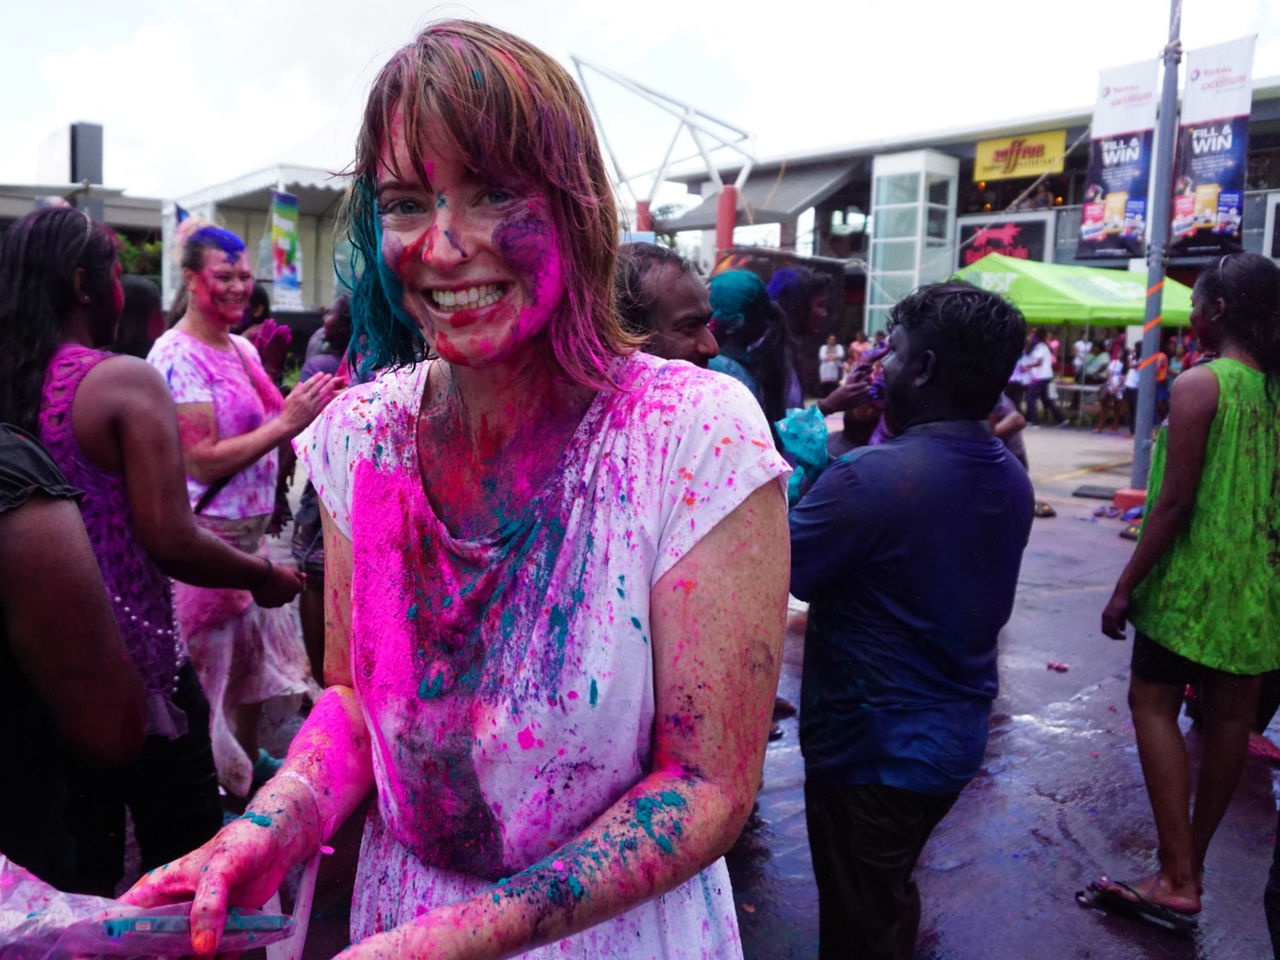 Millennial Pink Celebration Holi Multi Colored Cultures Face Powder Pink Color Cheerful Real People People Street Photography SUVA FIJI ISLANDS The Portraitist - 2017 EyeEm Awards